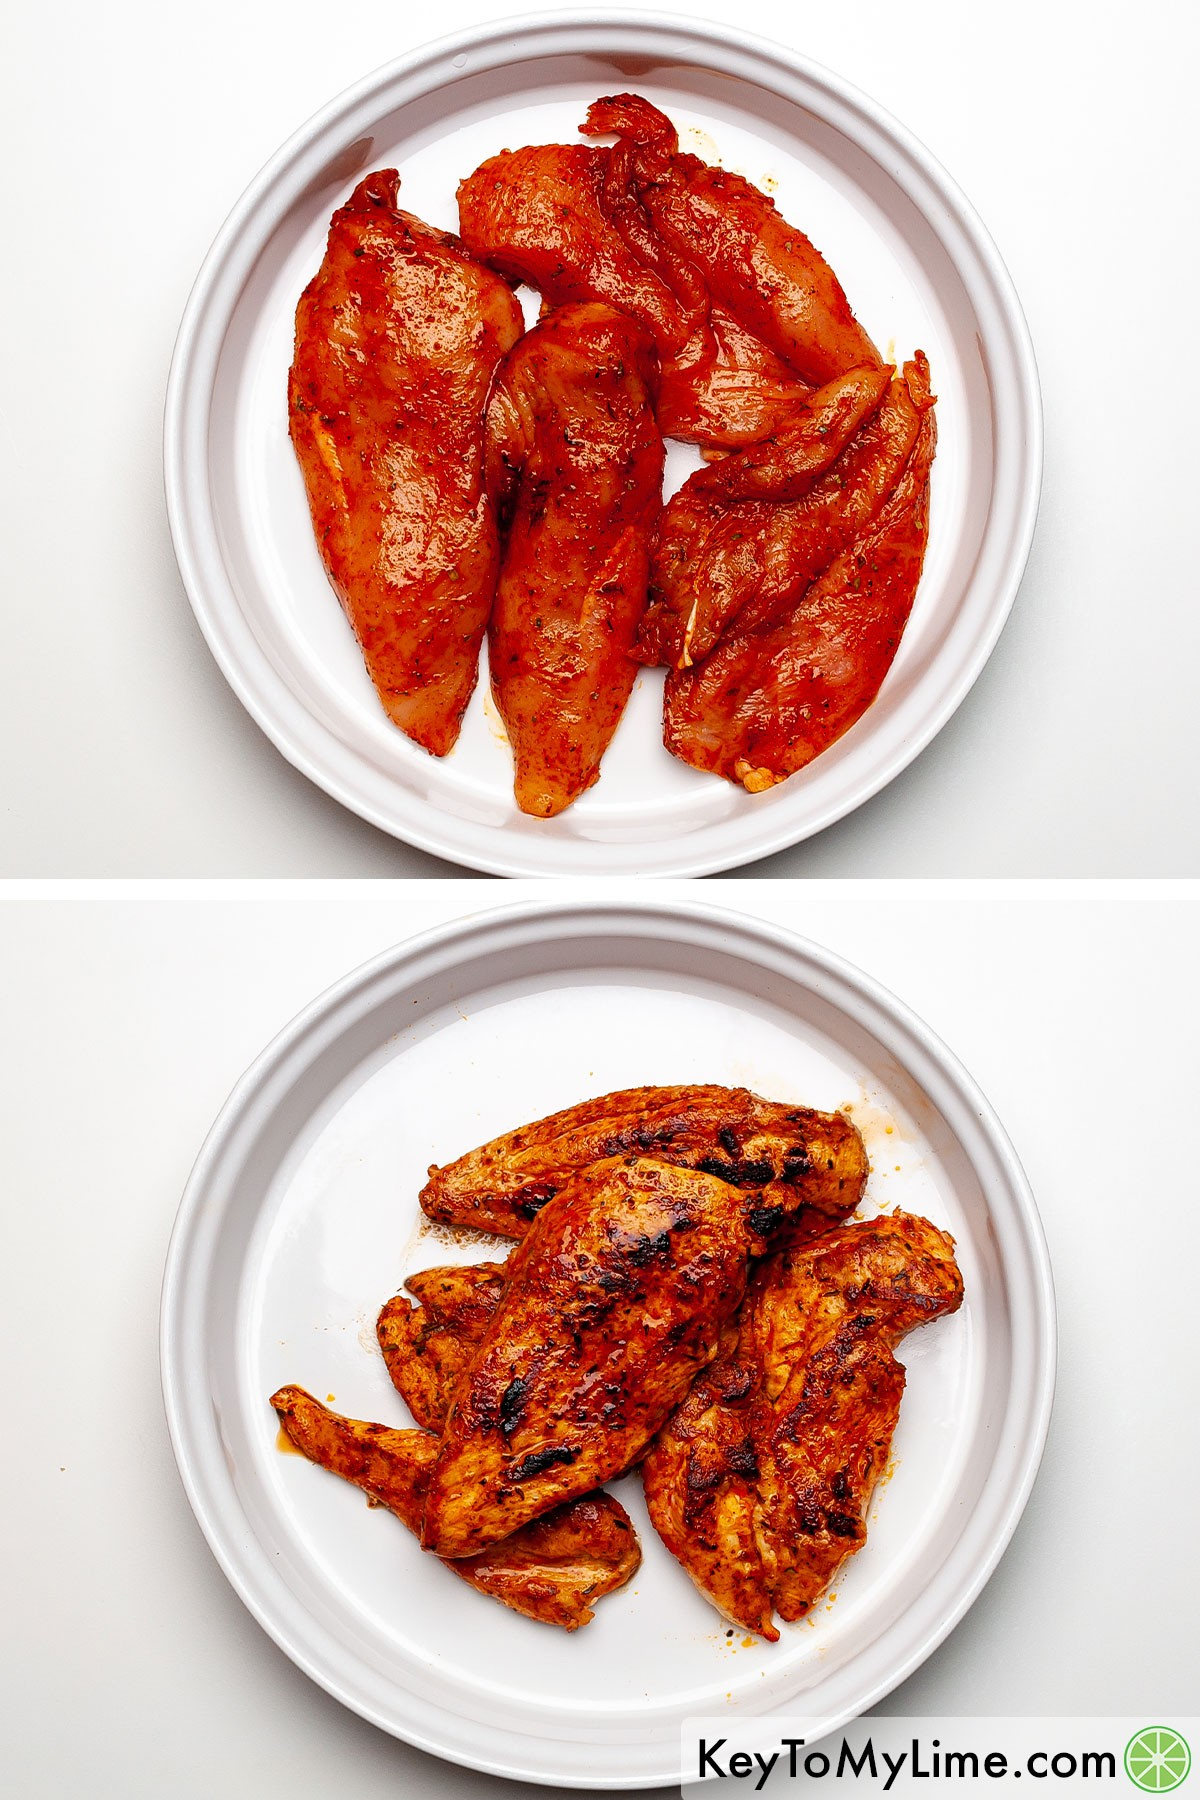 A process photo showing Cajun chicken before and after cooking.